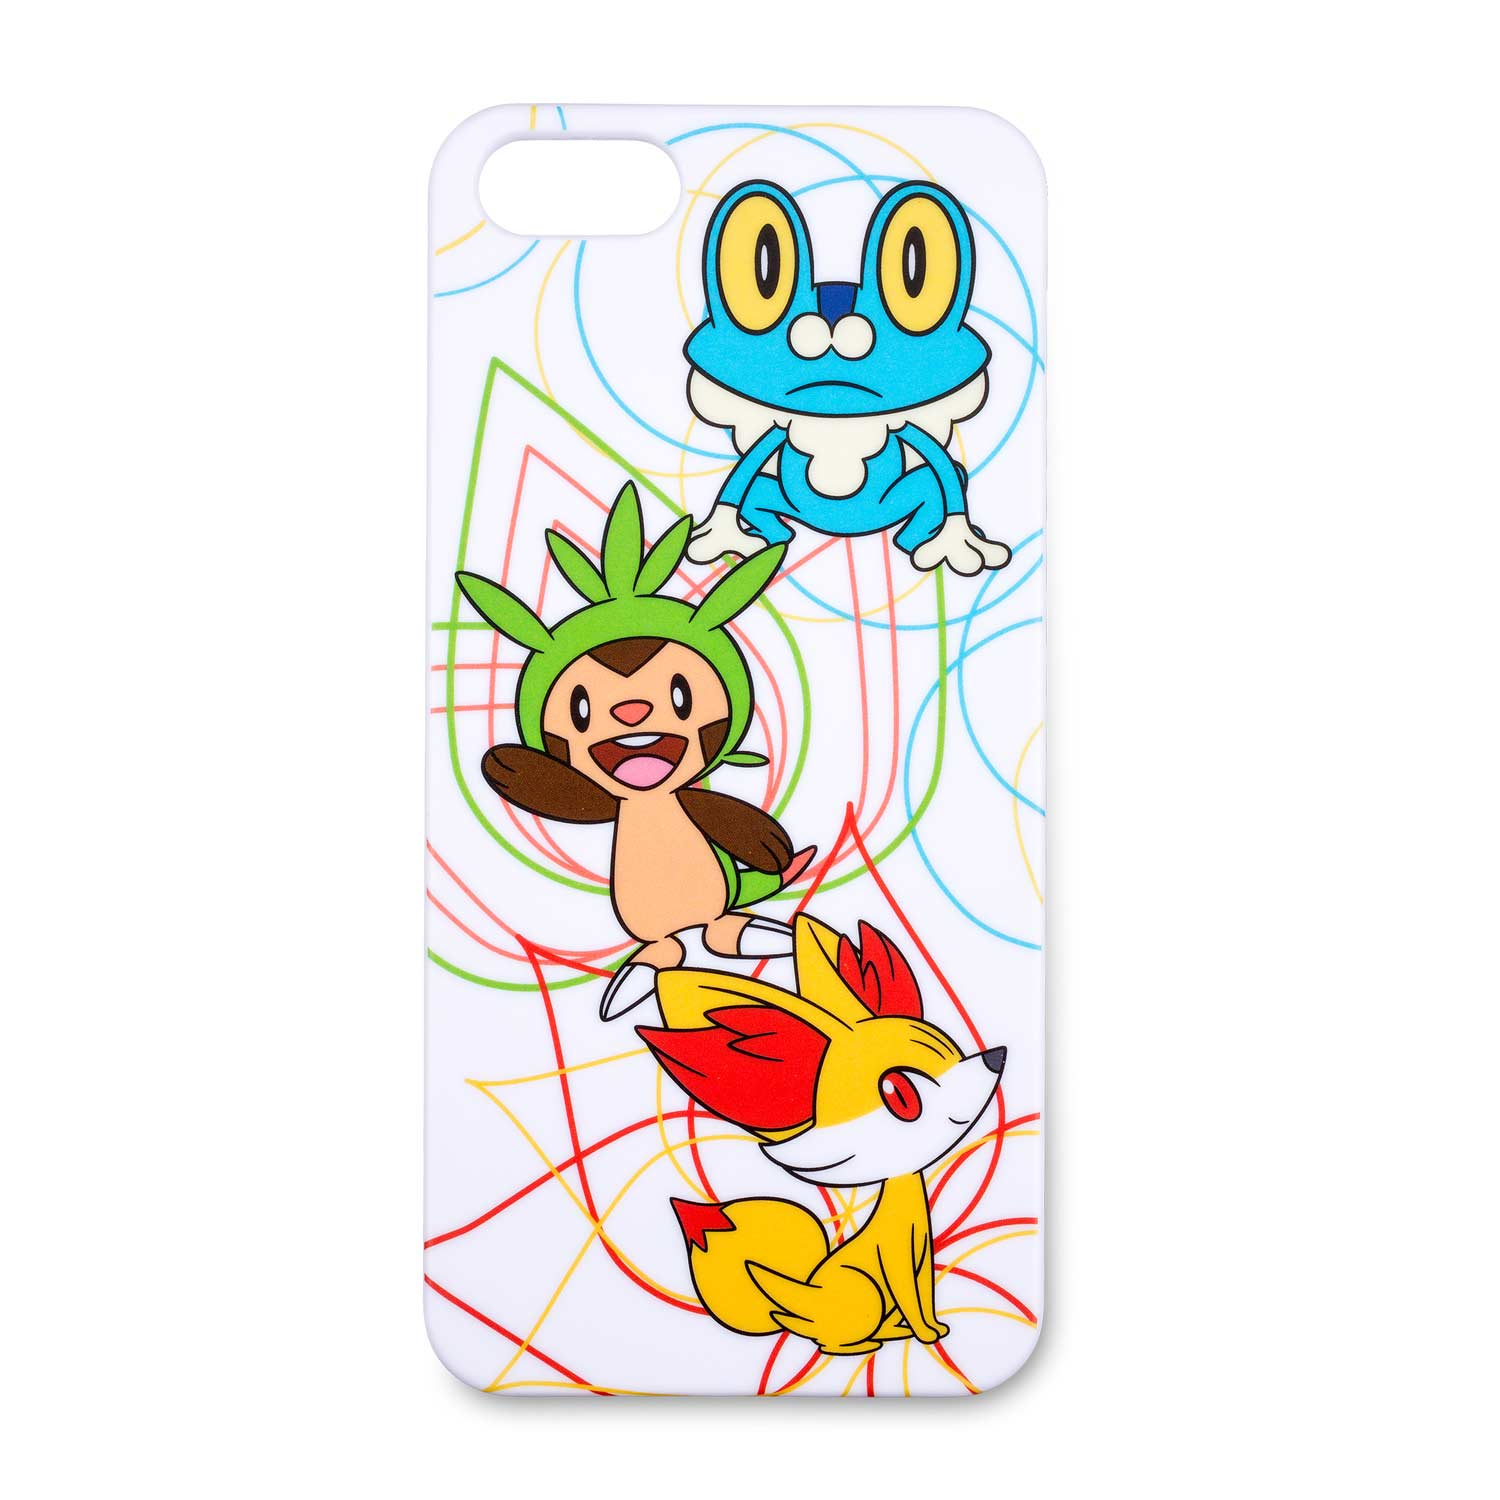 new product 31335 50bf8 Kalos Phone Case (iPhone 5 and iPhone 5s)